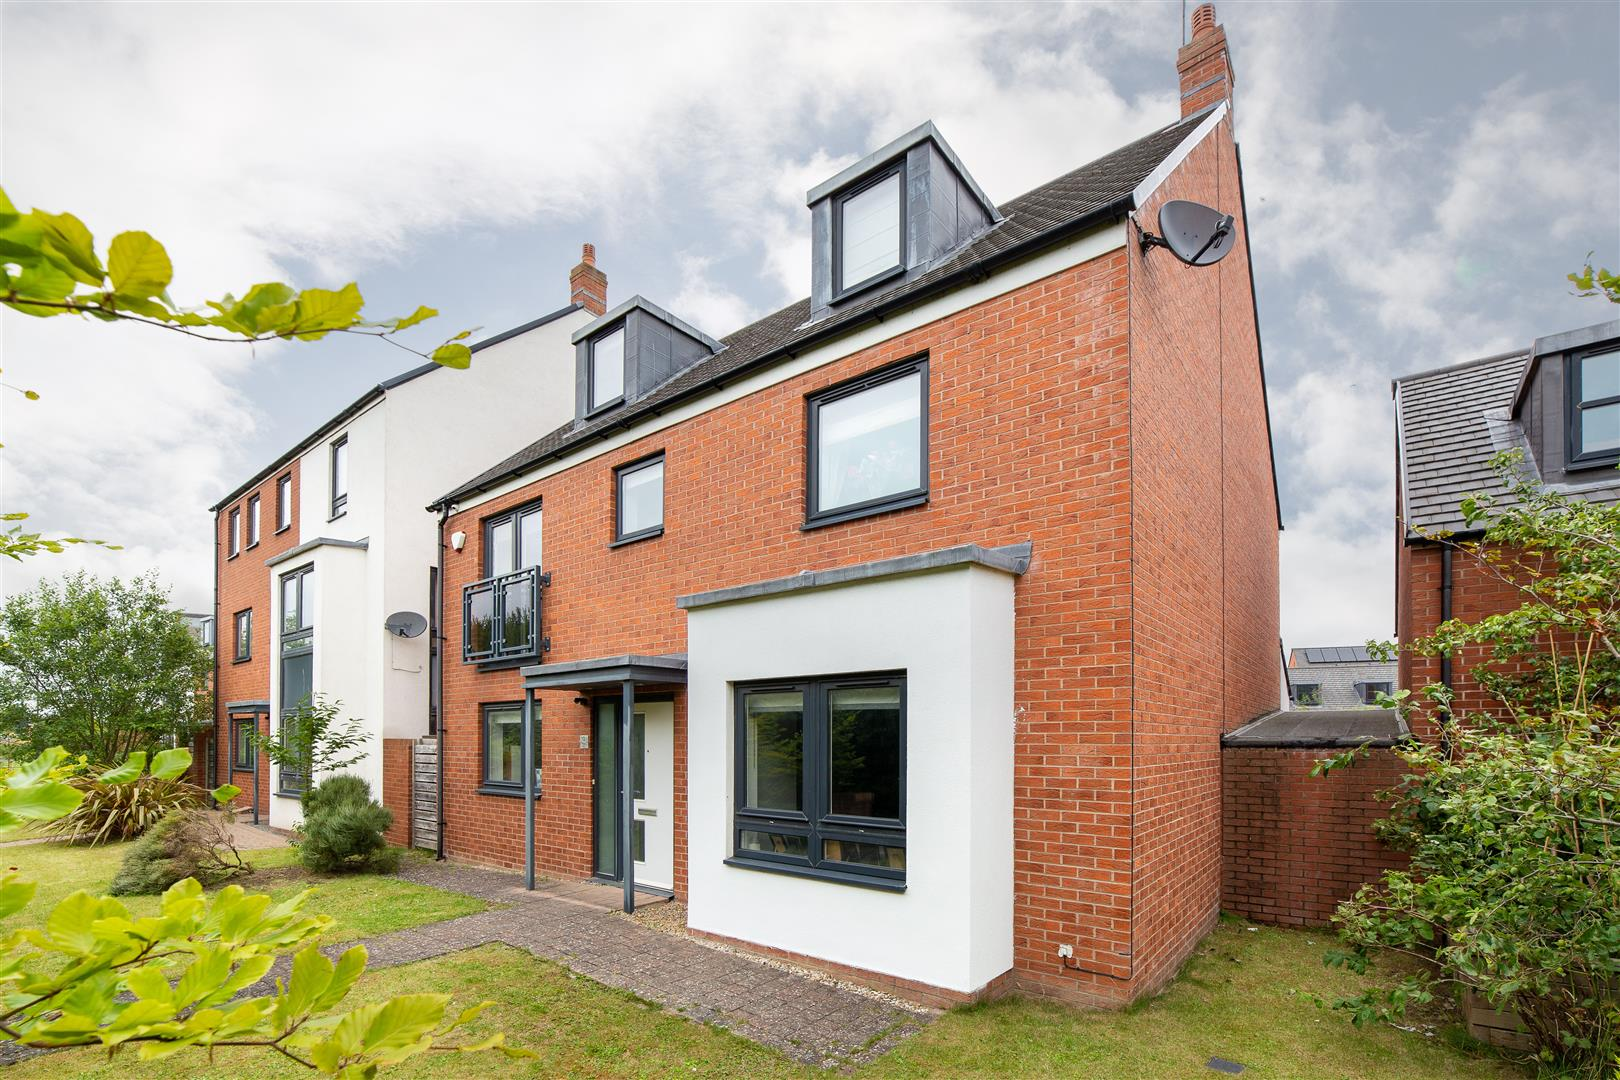 5 bed detached house for sale in Great Park, NE13 9AN  - Property Image 1